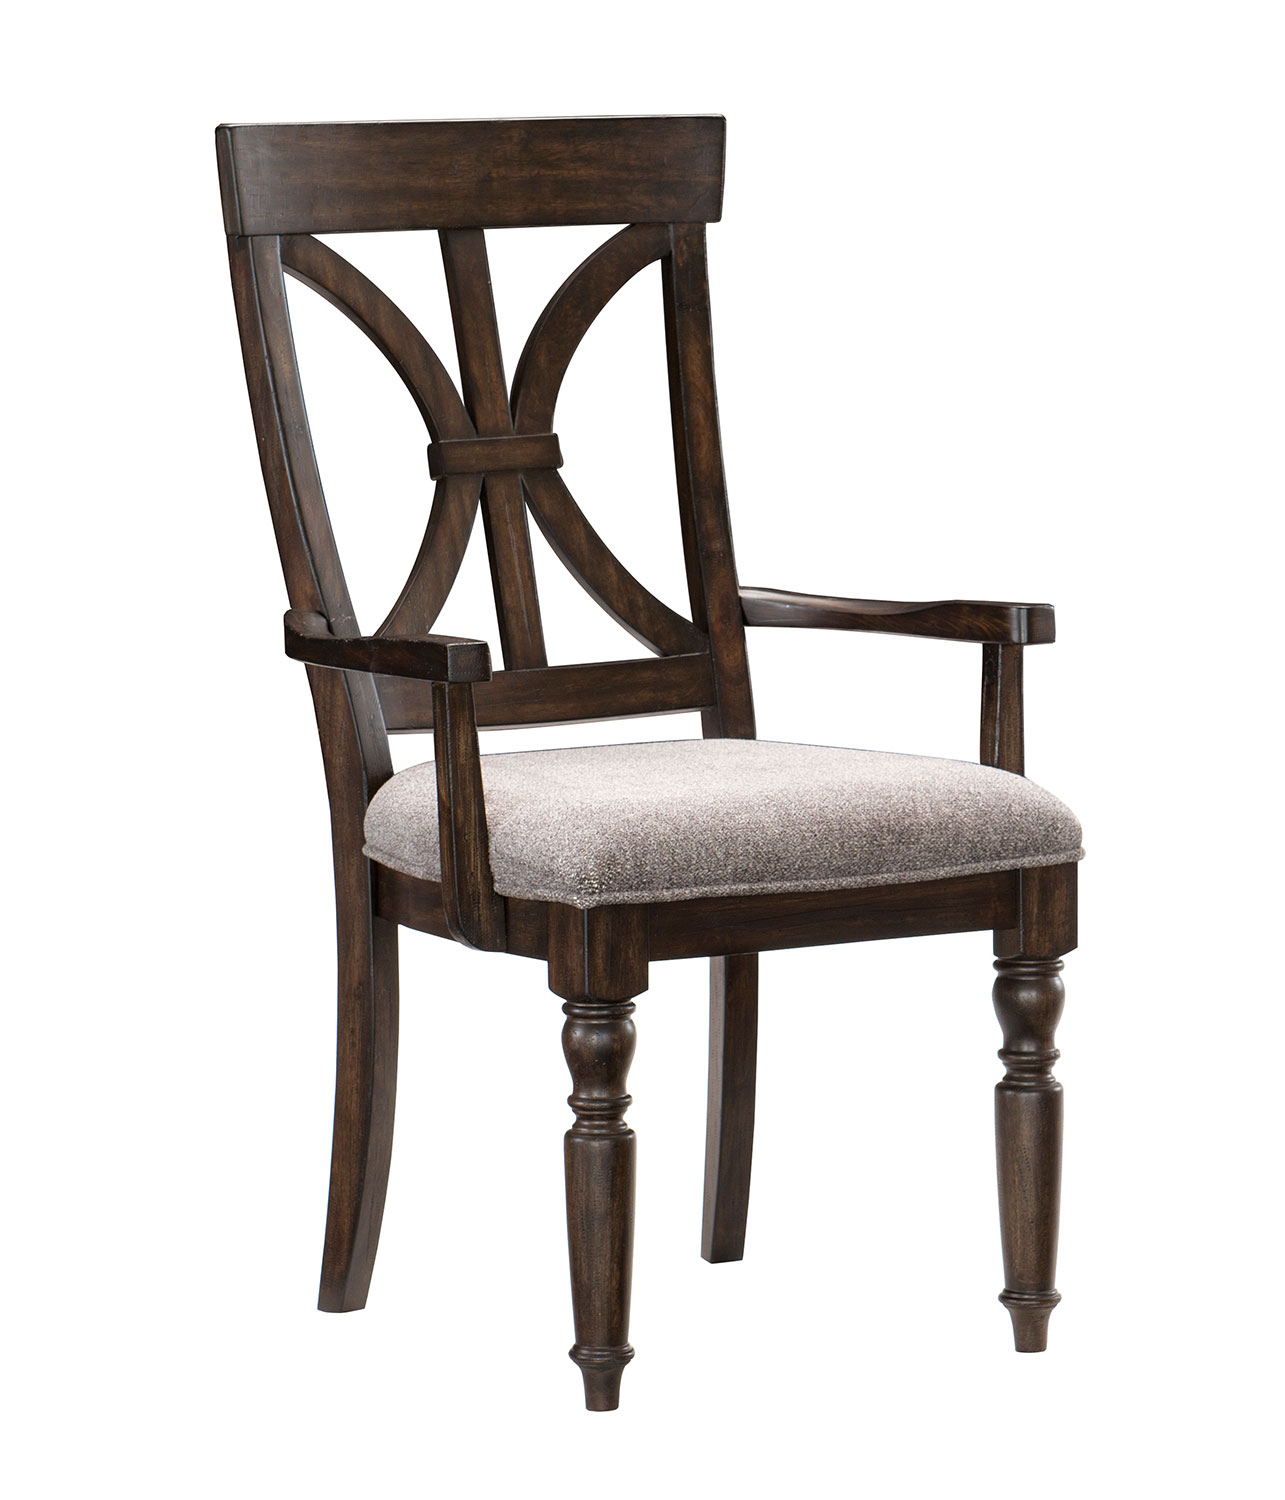 Homelegance Cardano Arm Chair - Driftwood Charcoal